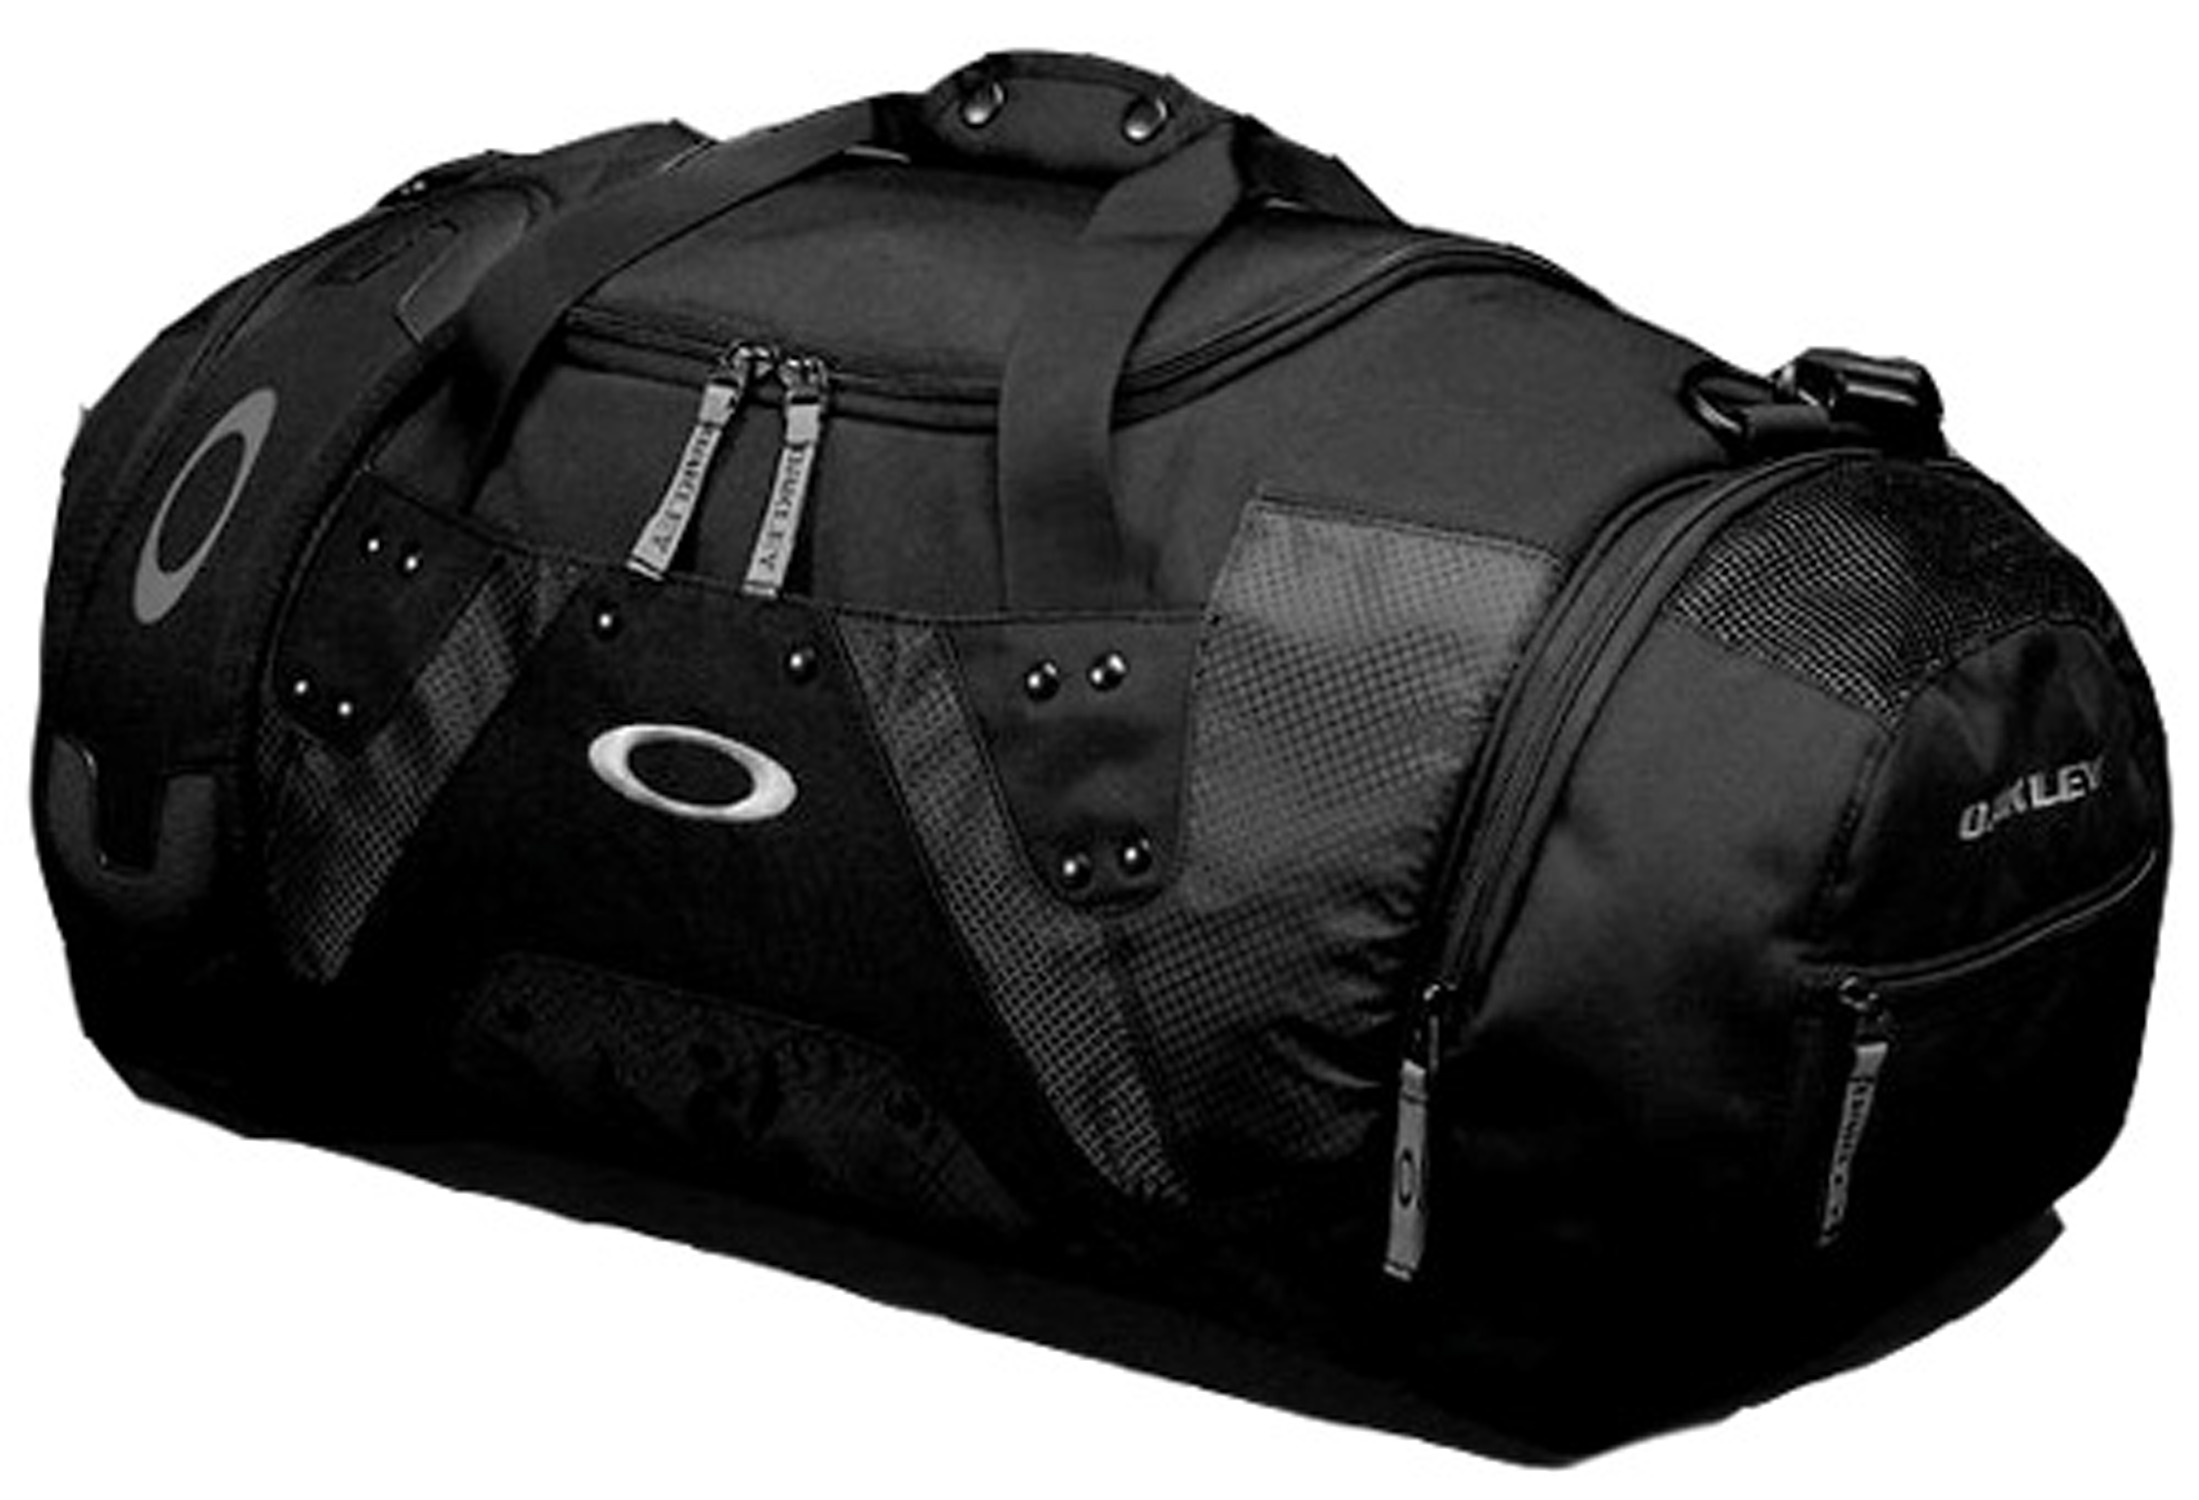 "Entertainment Key Features of the Oakley Large Carry Duffel Backpack: Padded shoulder strap Exterior compartment on each end with zip closure and mesh ventilation Exterior zip pocket on one end; slip pocket on the other Exterior slip pocket on one side Embroidered icon and logo accents Dimensions: 13"" H x 10.5"" W x 23.5"" D (41L capacity) - $65.00"